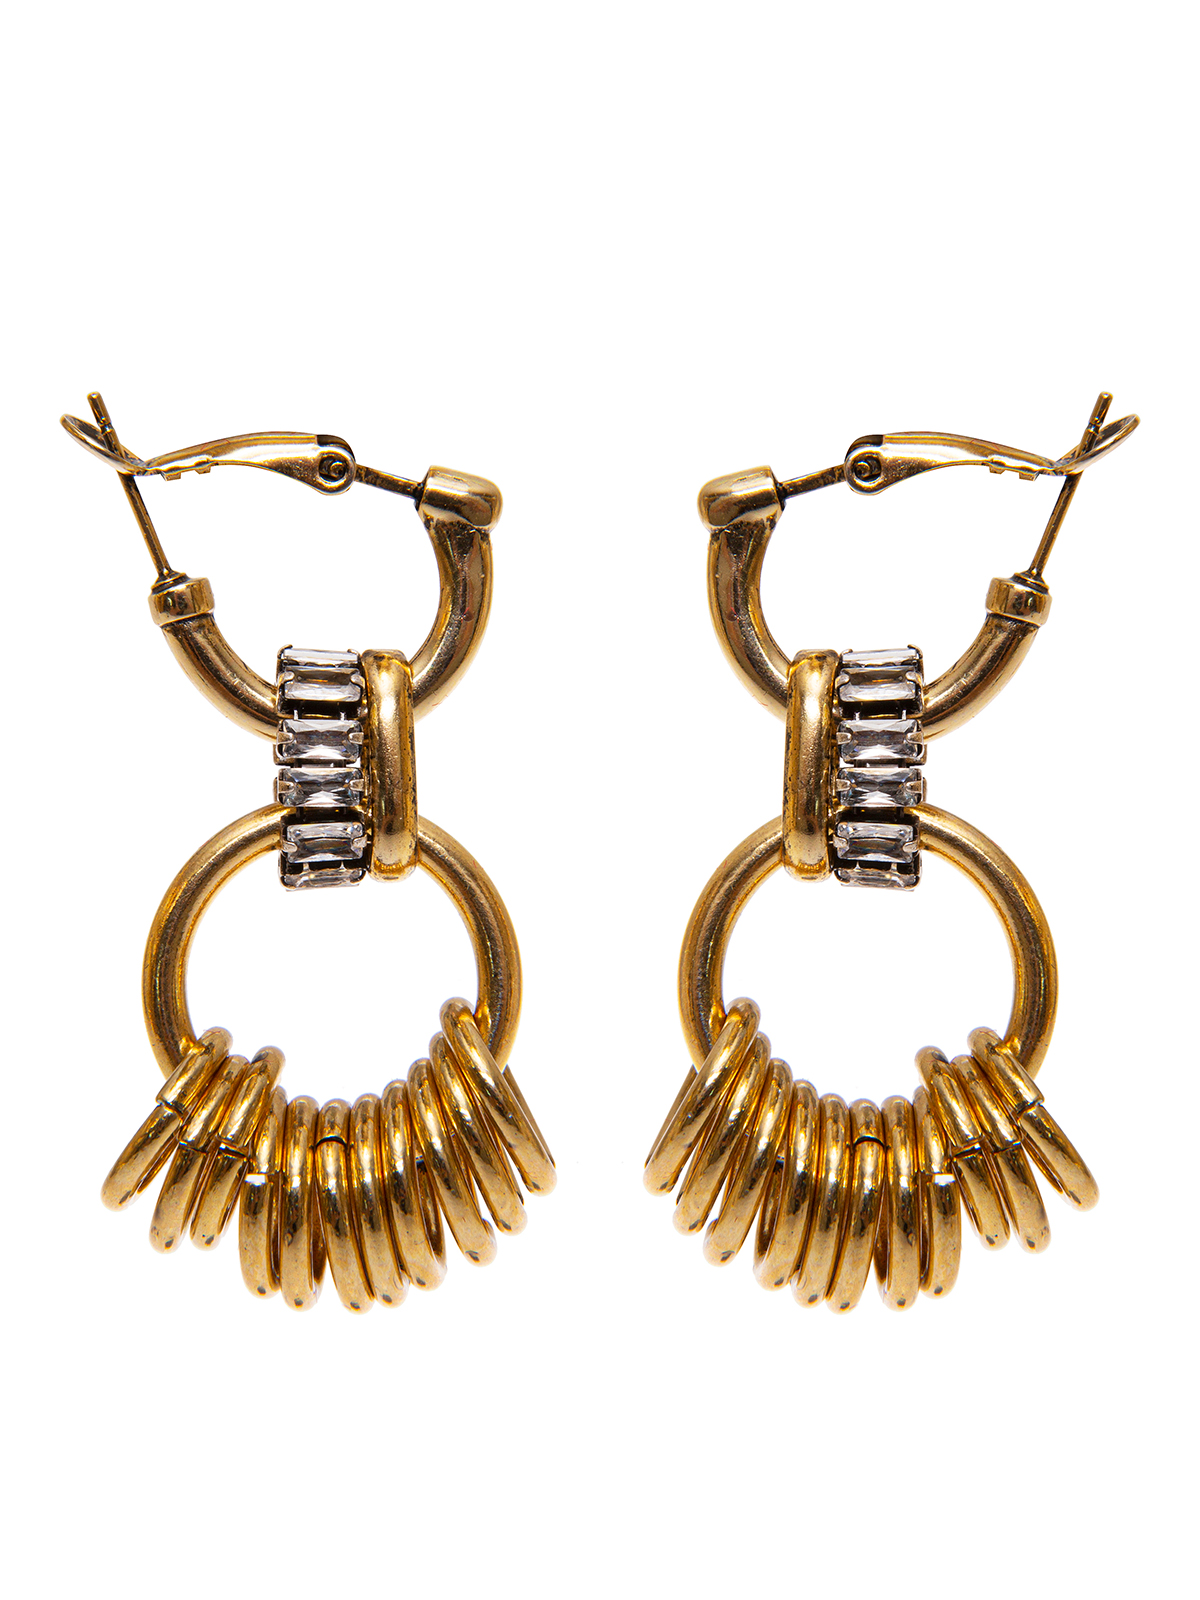 Hoop earrings embellished with rings and crystals